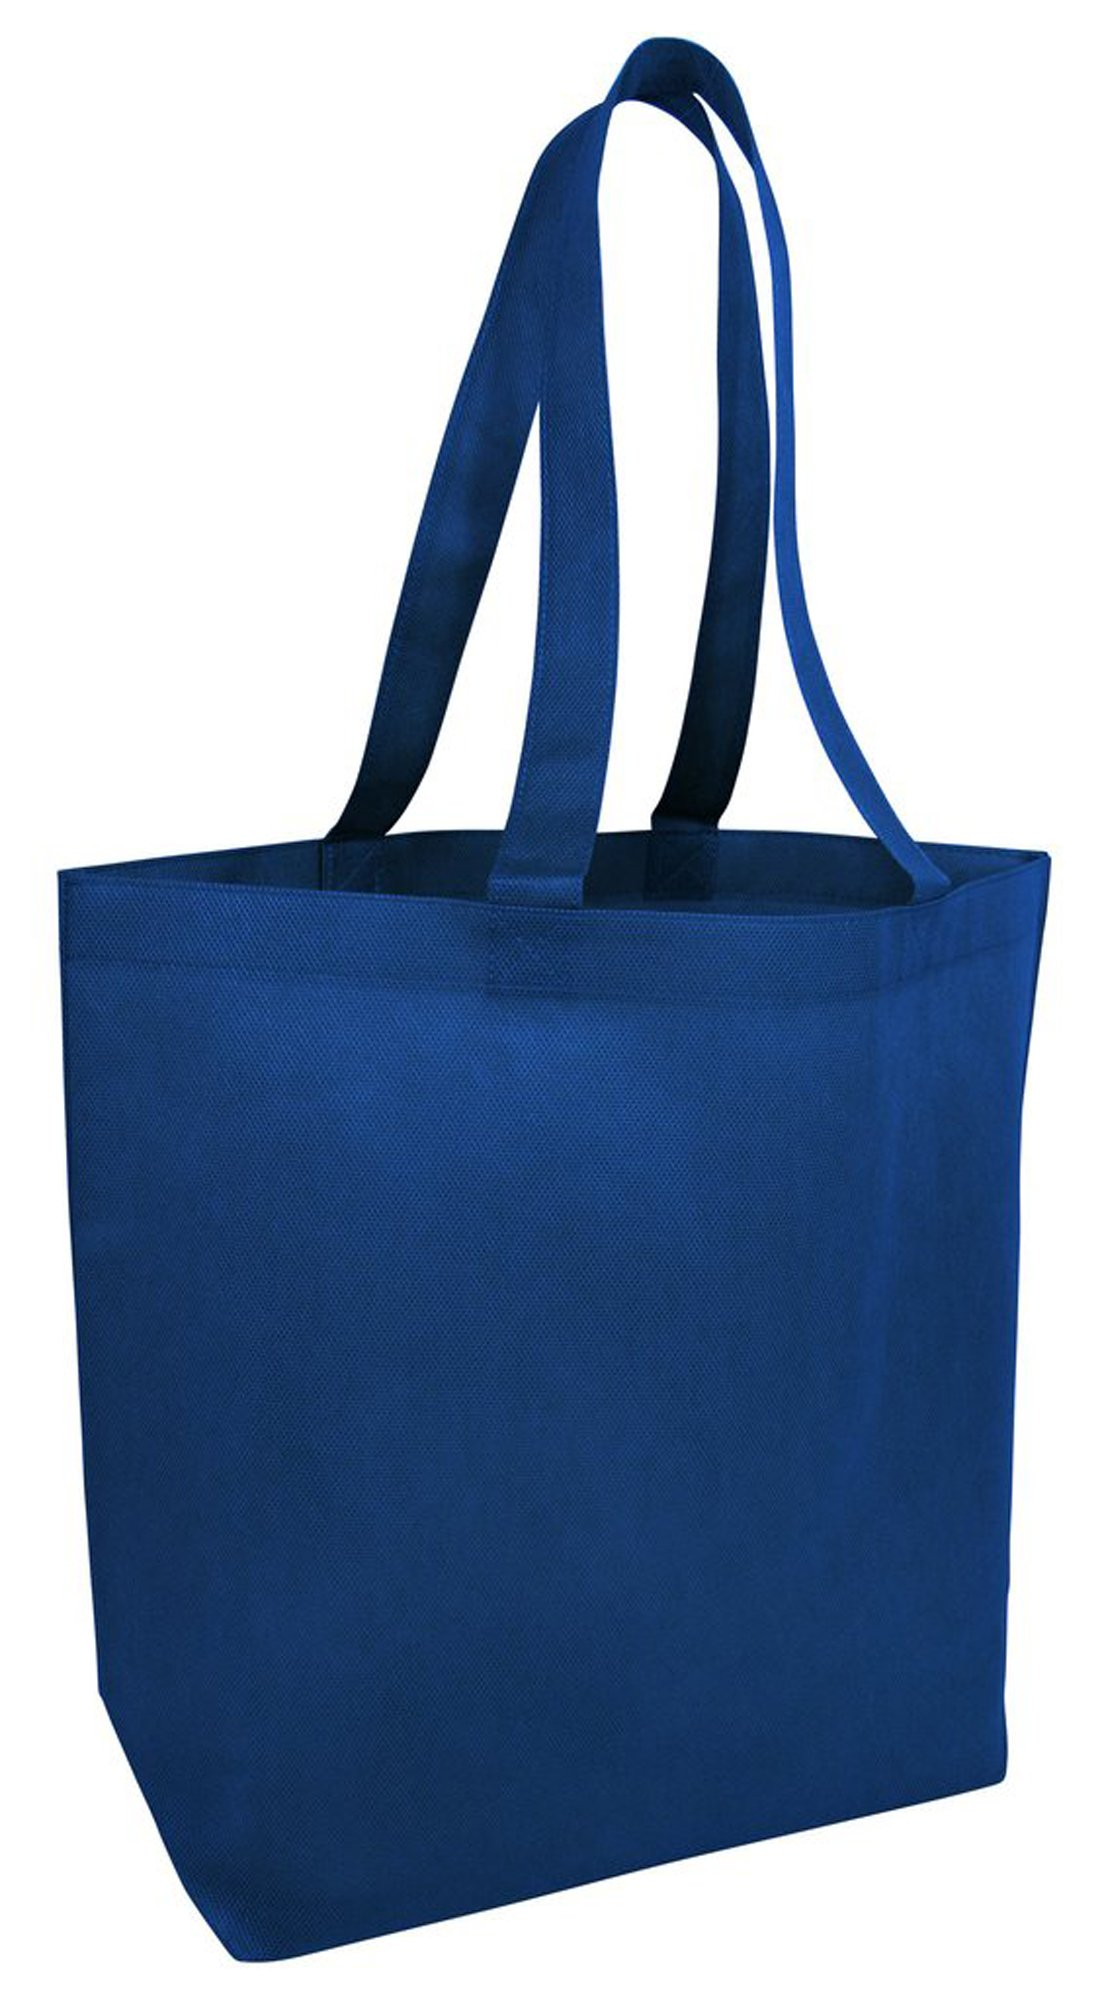 Promotional 80gm Non-Woven Polypropylene Large Size Tote Bags with Bottom Gusset Trade Show Reusable Bags in BULK Event Promo Tote Bags for Events, Conventions, Promotions - NTB25 (100, Royal)